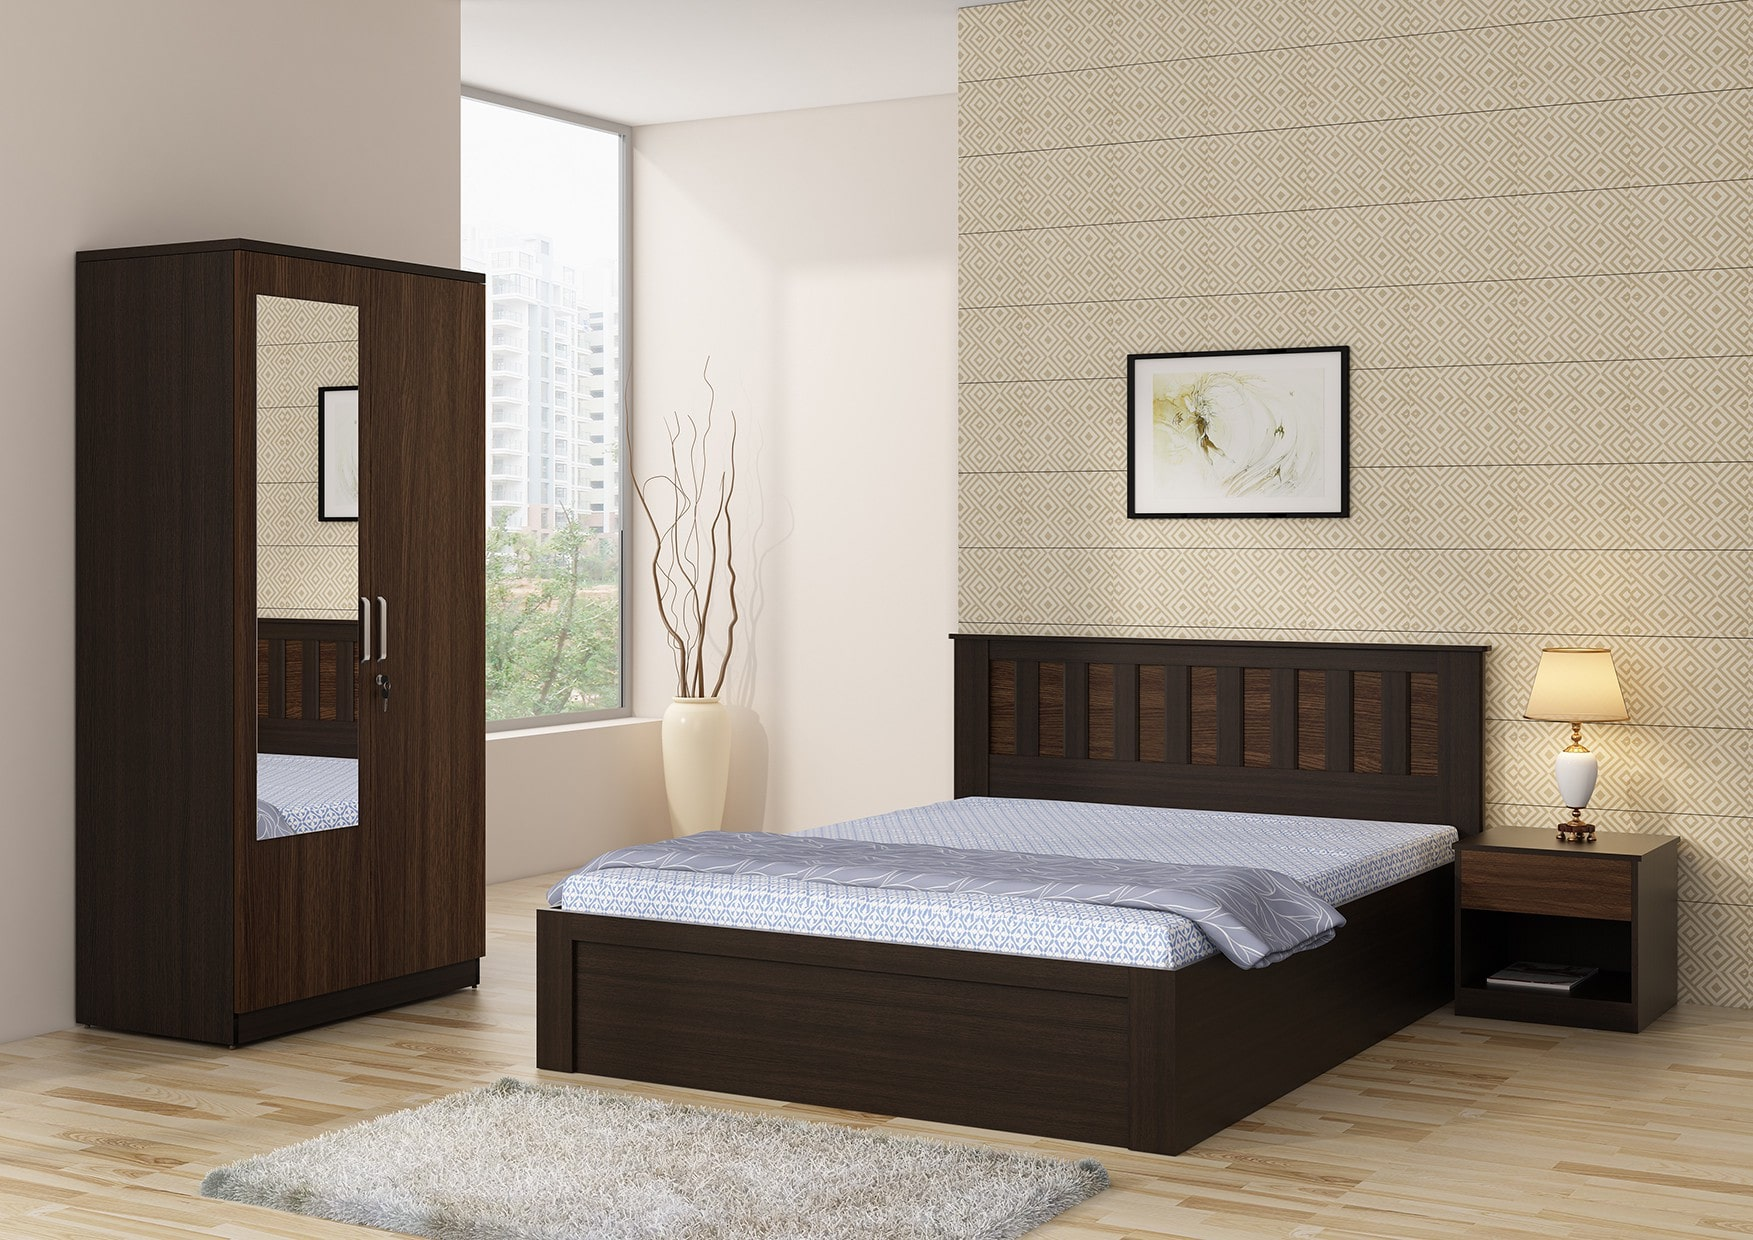 Moca Bedroom Set Betterhomeindia Indian Bedroom Set